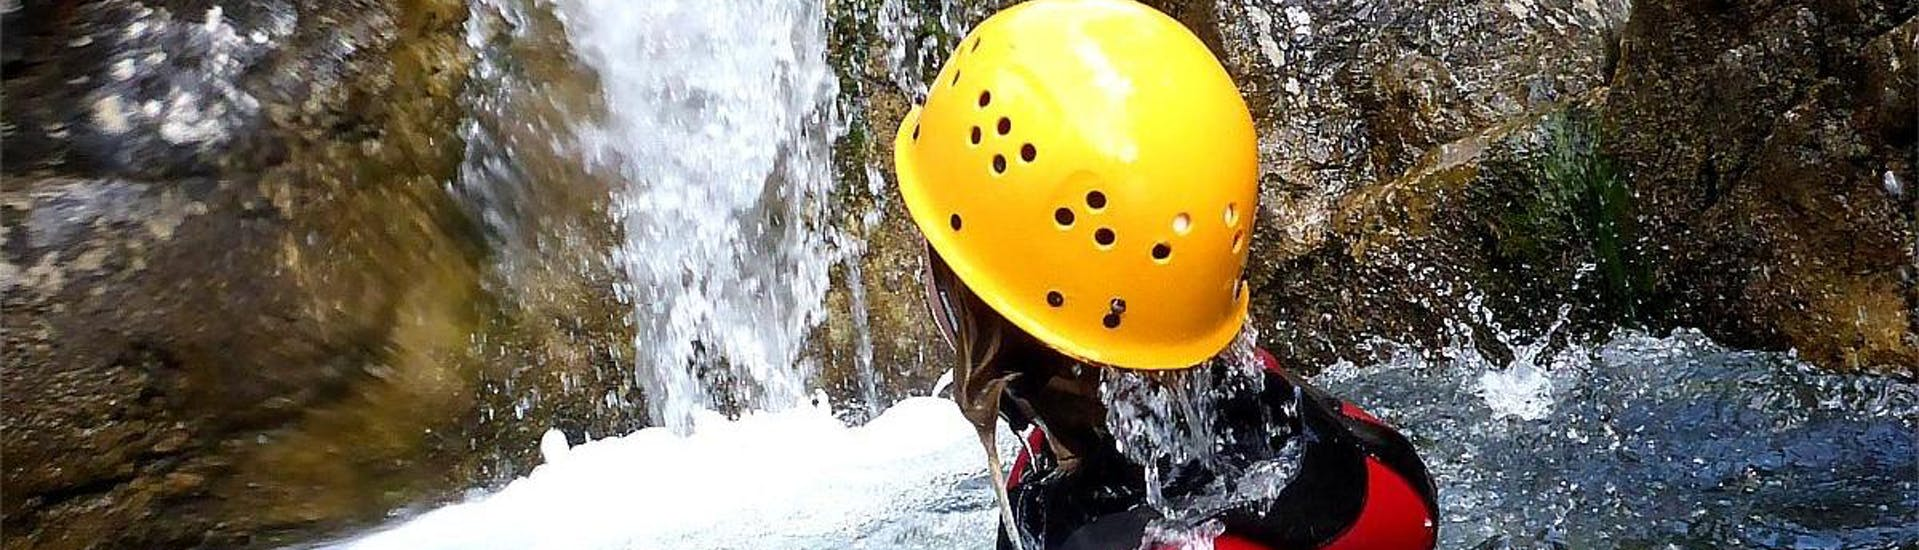 Canyoning in the Stuibenfälle for Beginners